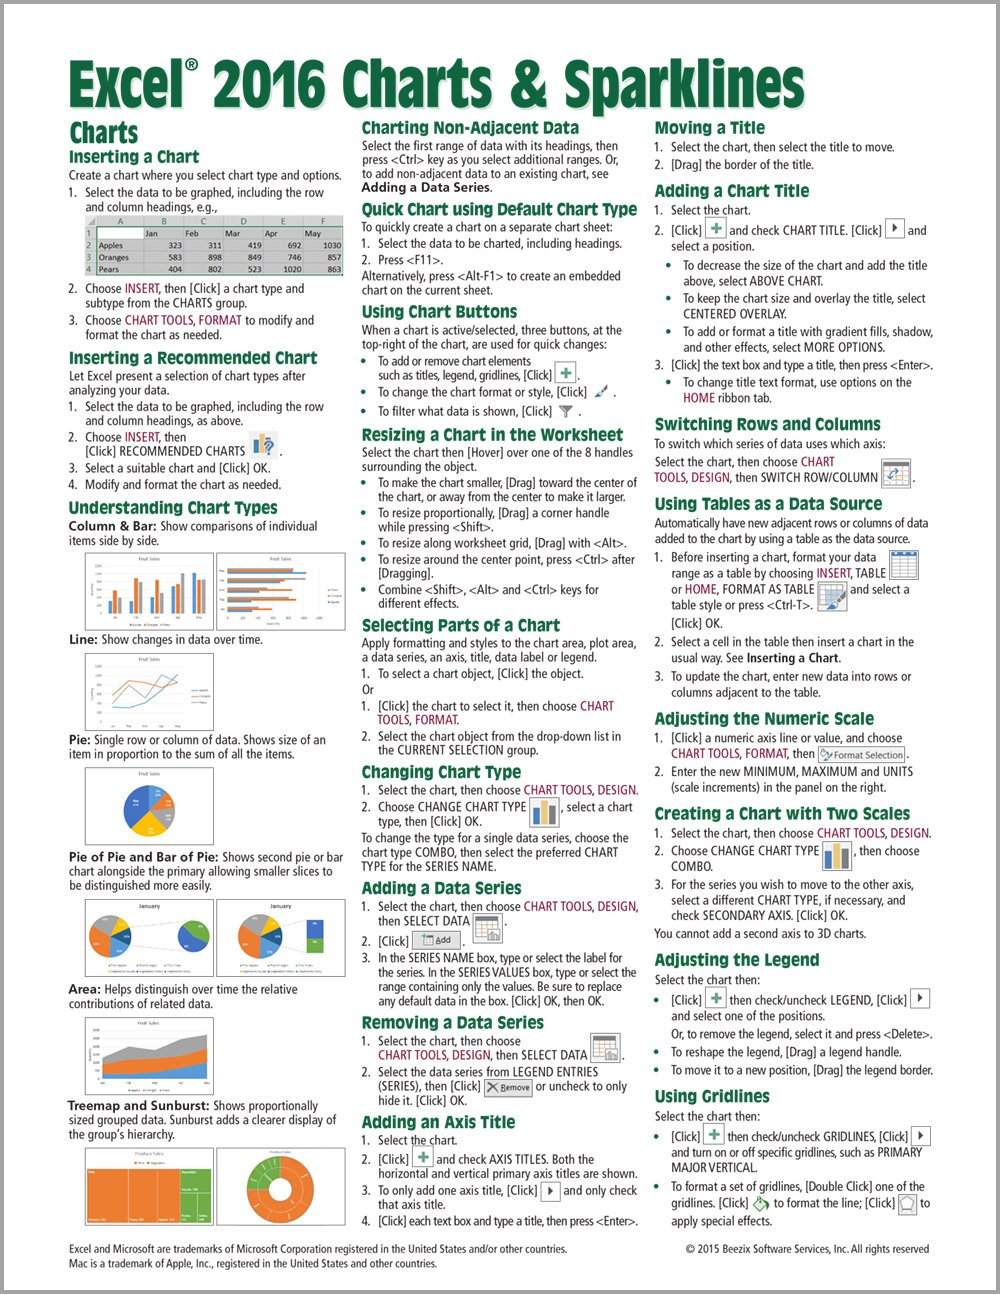 Microsoft Excel 2016 Charts & Sparklines Quick Reference